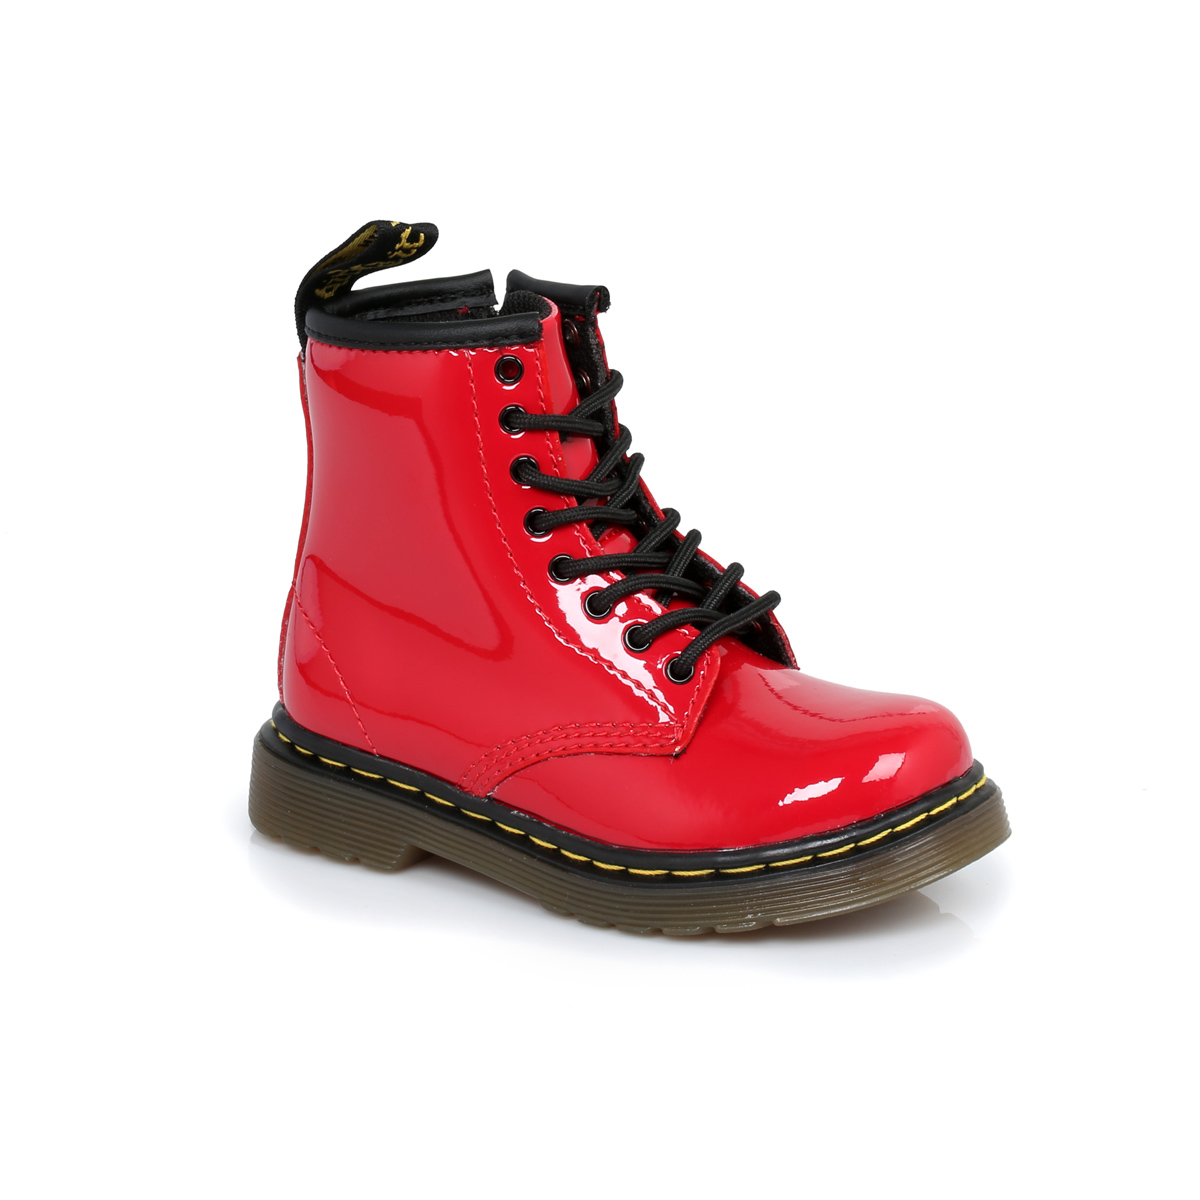 Dr martens infants red brooklee kids leather boots sizes 6 9 ebay